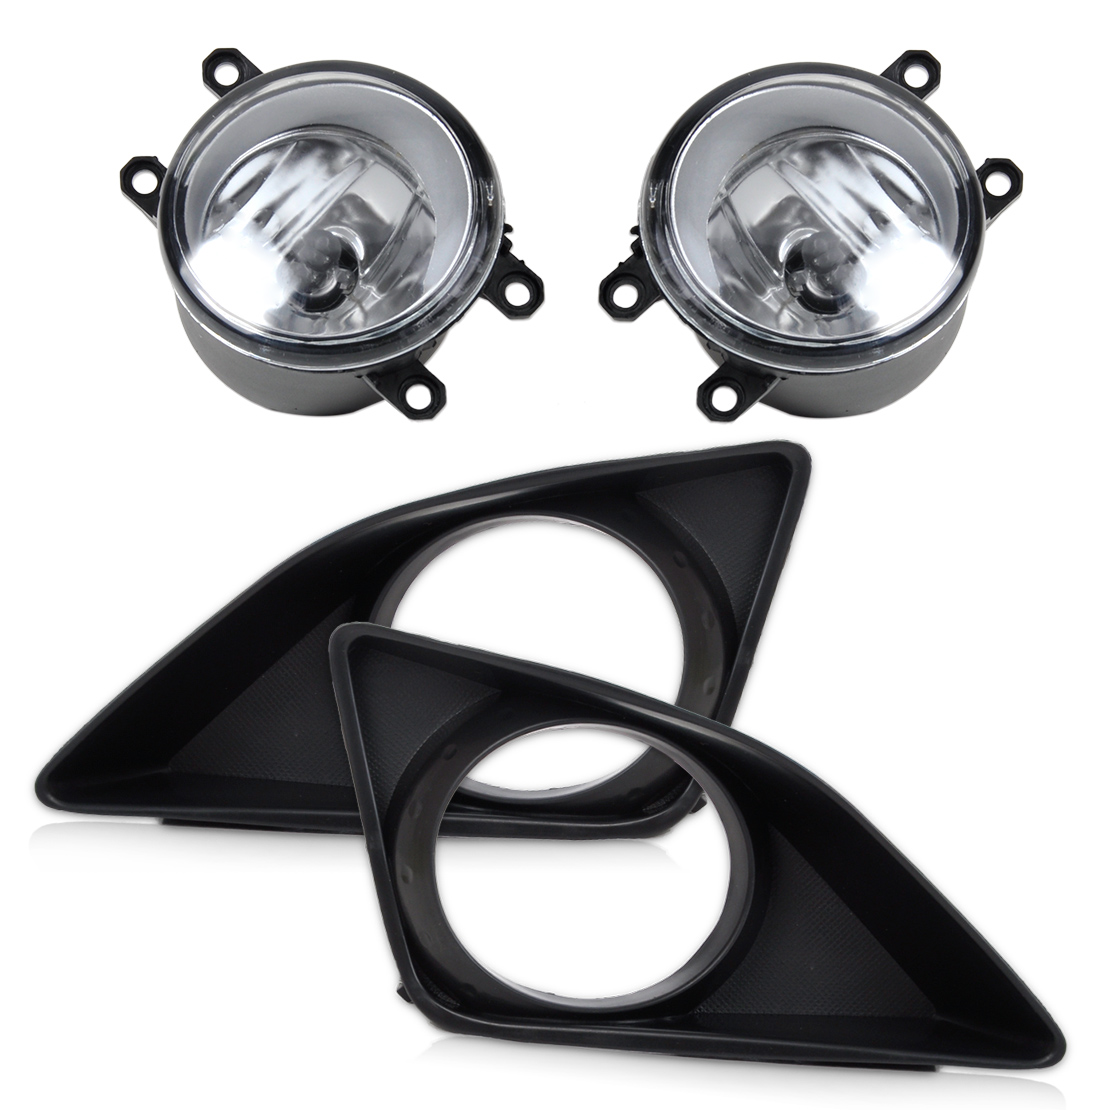 beler 4Pcs Front Right Left Fog Light Lamp + Grille Cover Bezel for Toyota Corolla 2007 2008 2009 2010 dwcx 81210 06050 81210 0d040 2pcs front fog light lamp 2pcs grille cover bezel for toyota corolla 2007 2008 2009 2010